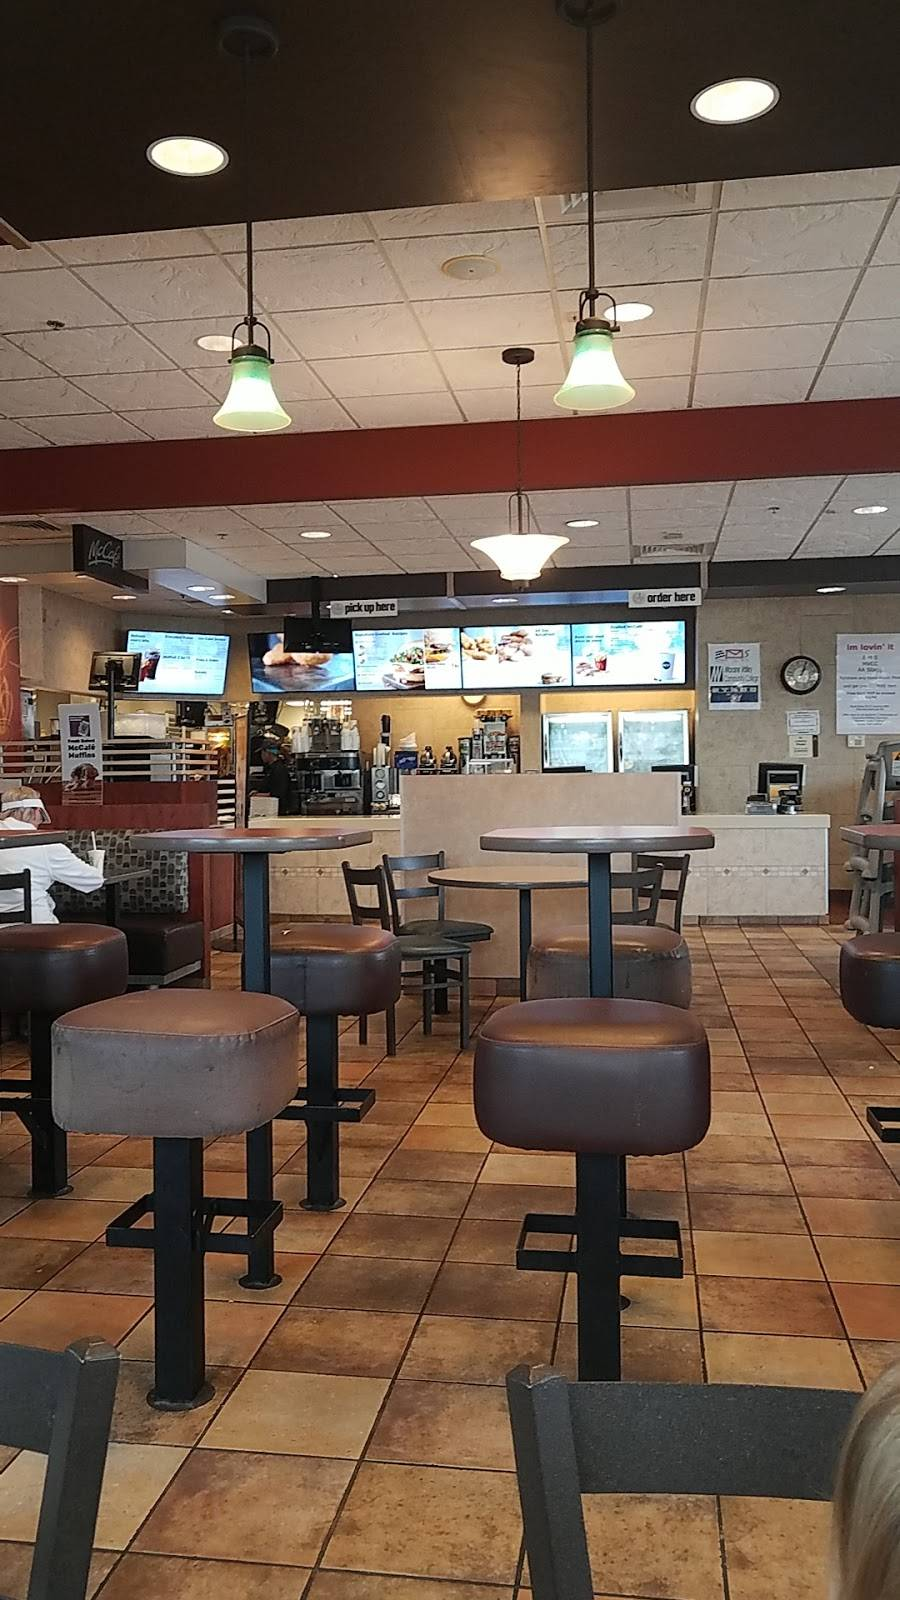 McDonalds | cafe | 11050 SW Hwy, Palos Hills, IL 60465, USA | 7089743838 OR +1 708-974-3838